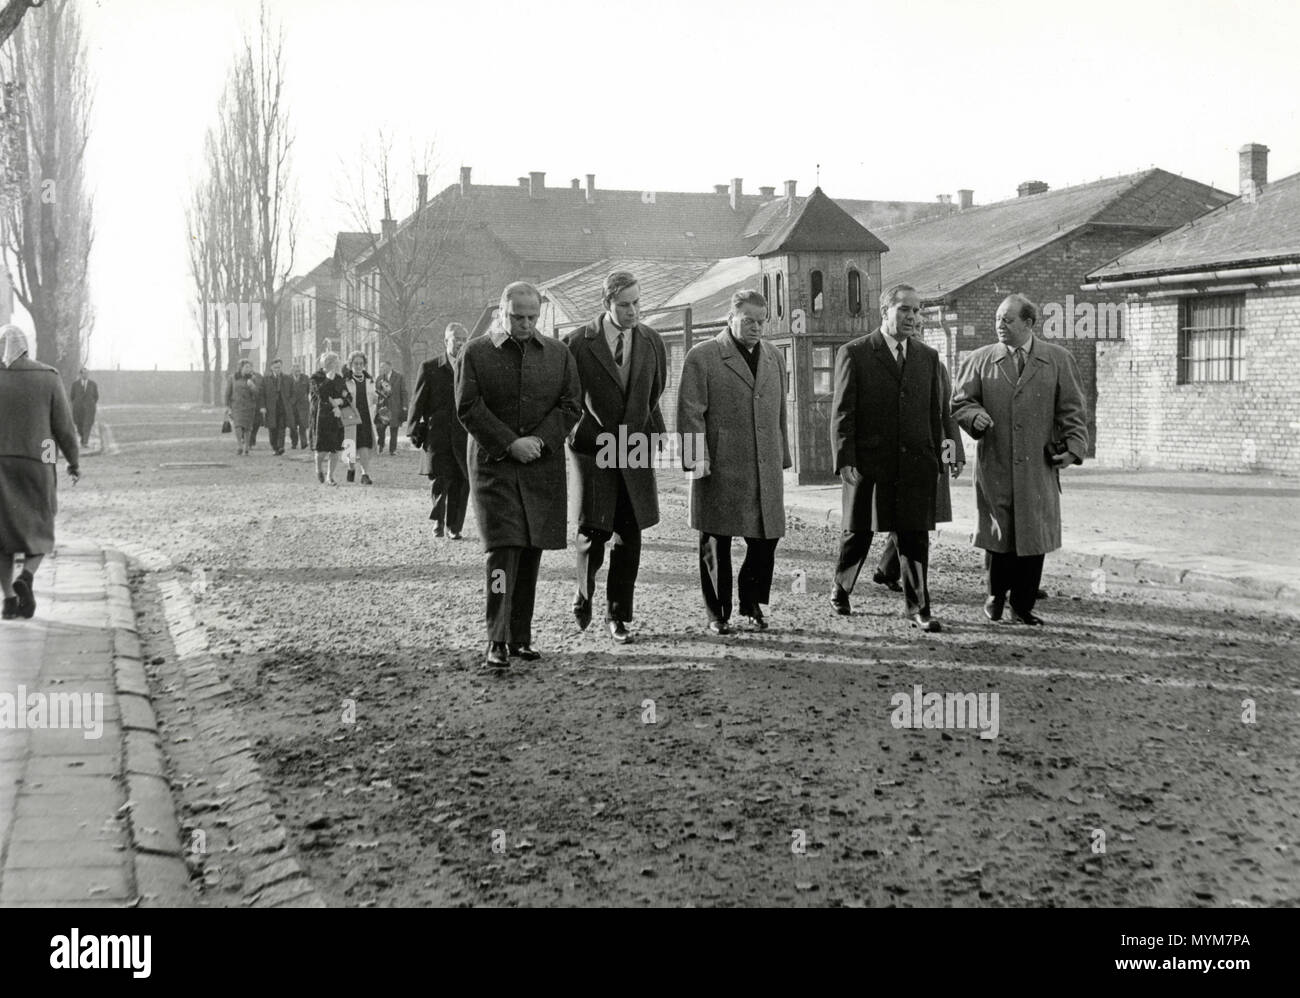 Politicians visiting concentration camps after WW2, Auschwitz, Poland 1940s - Stock Image